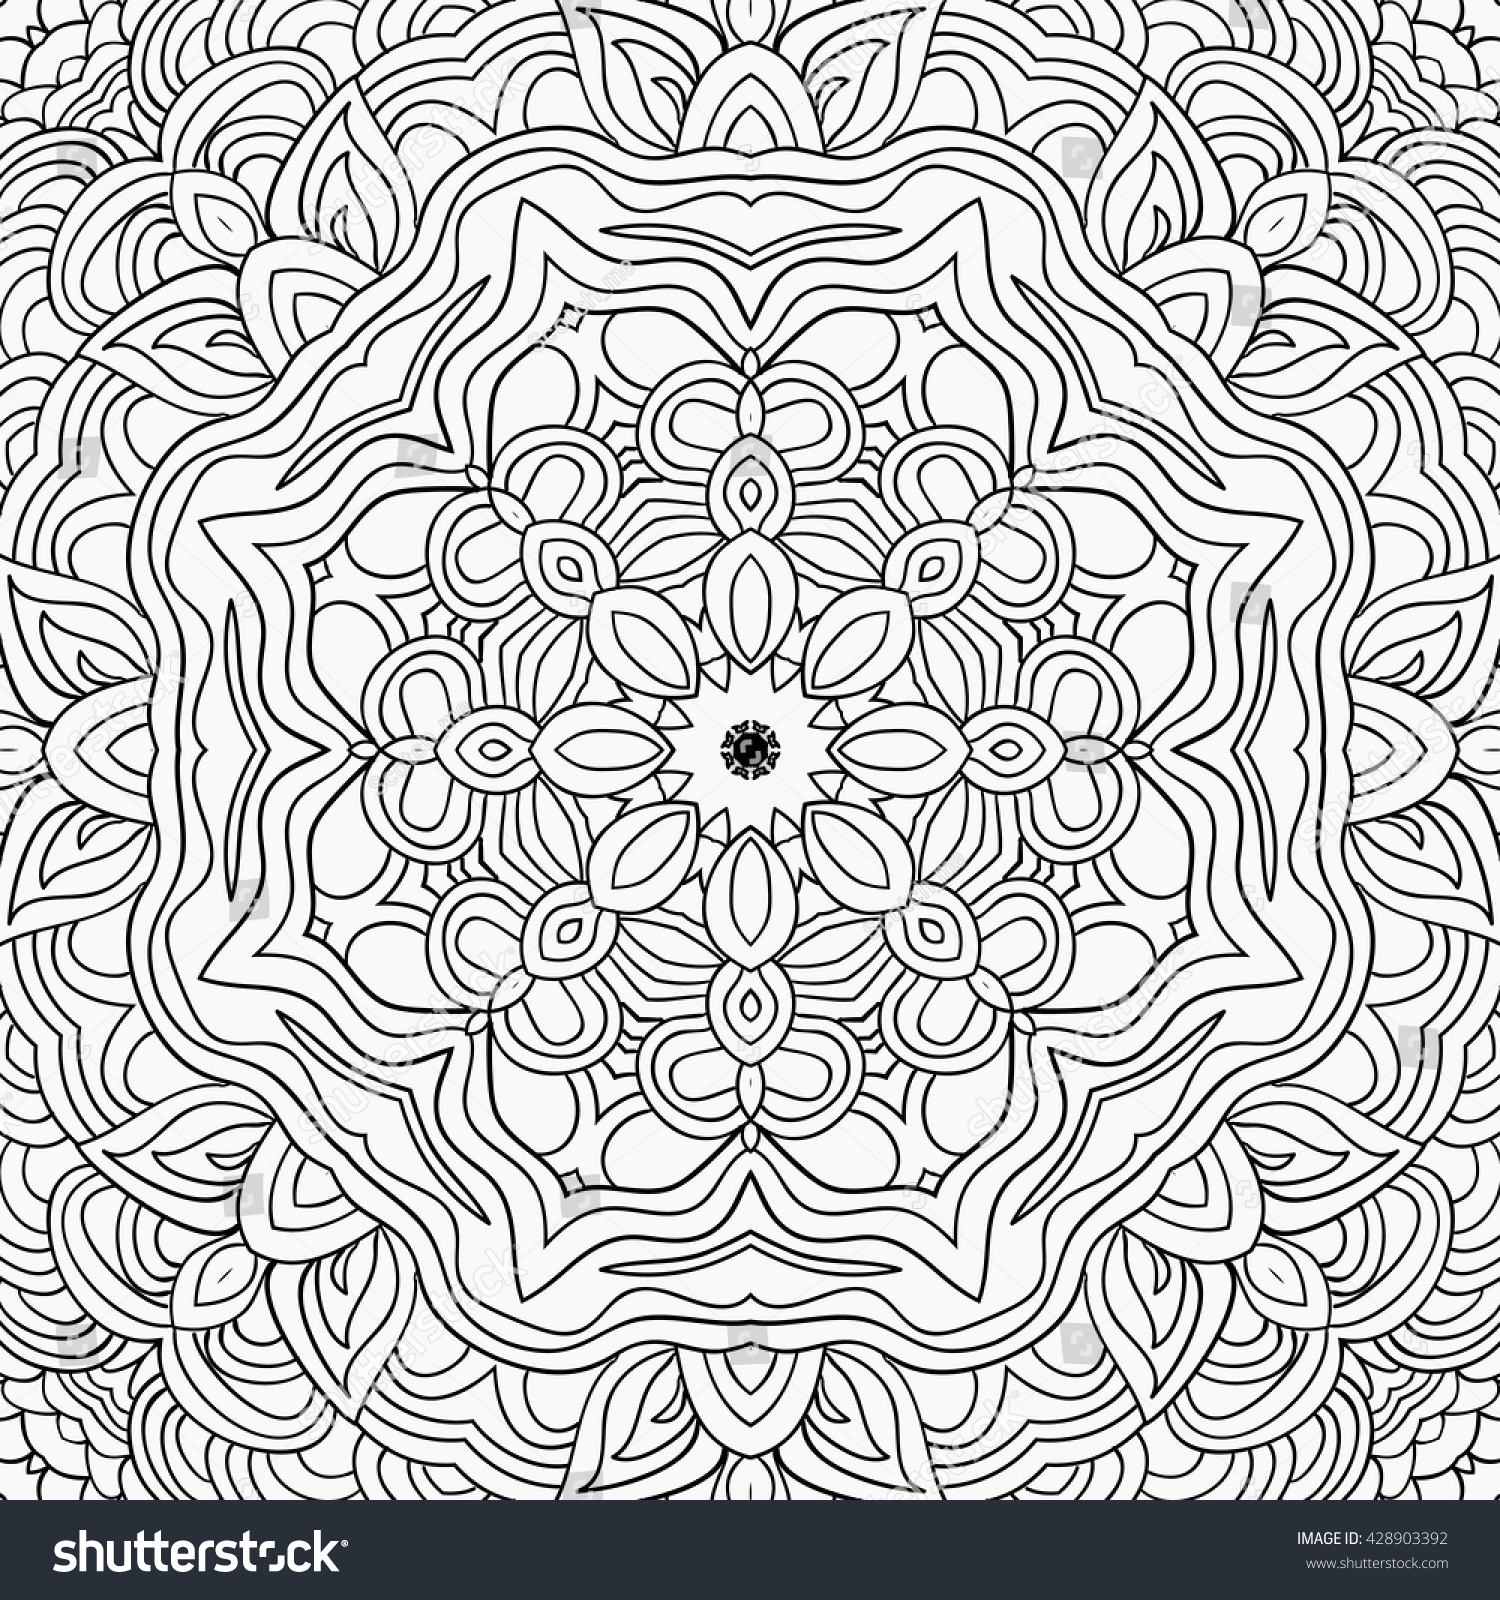 Uncolored Symmetric Tracery Colouring Can Be Stock Vector 428903392 ...